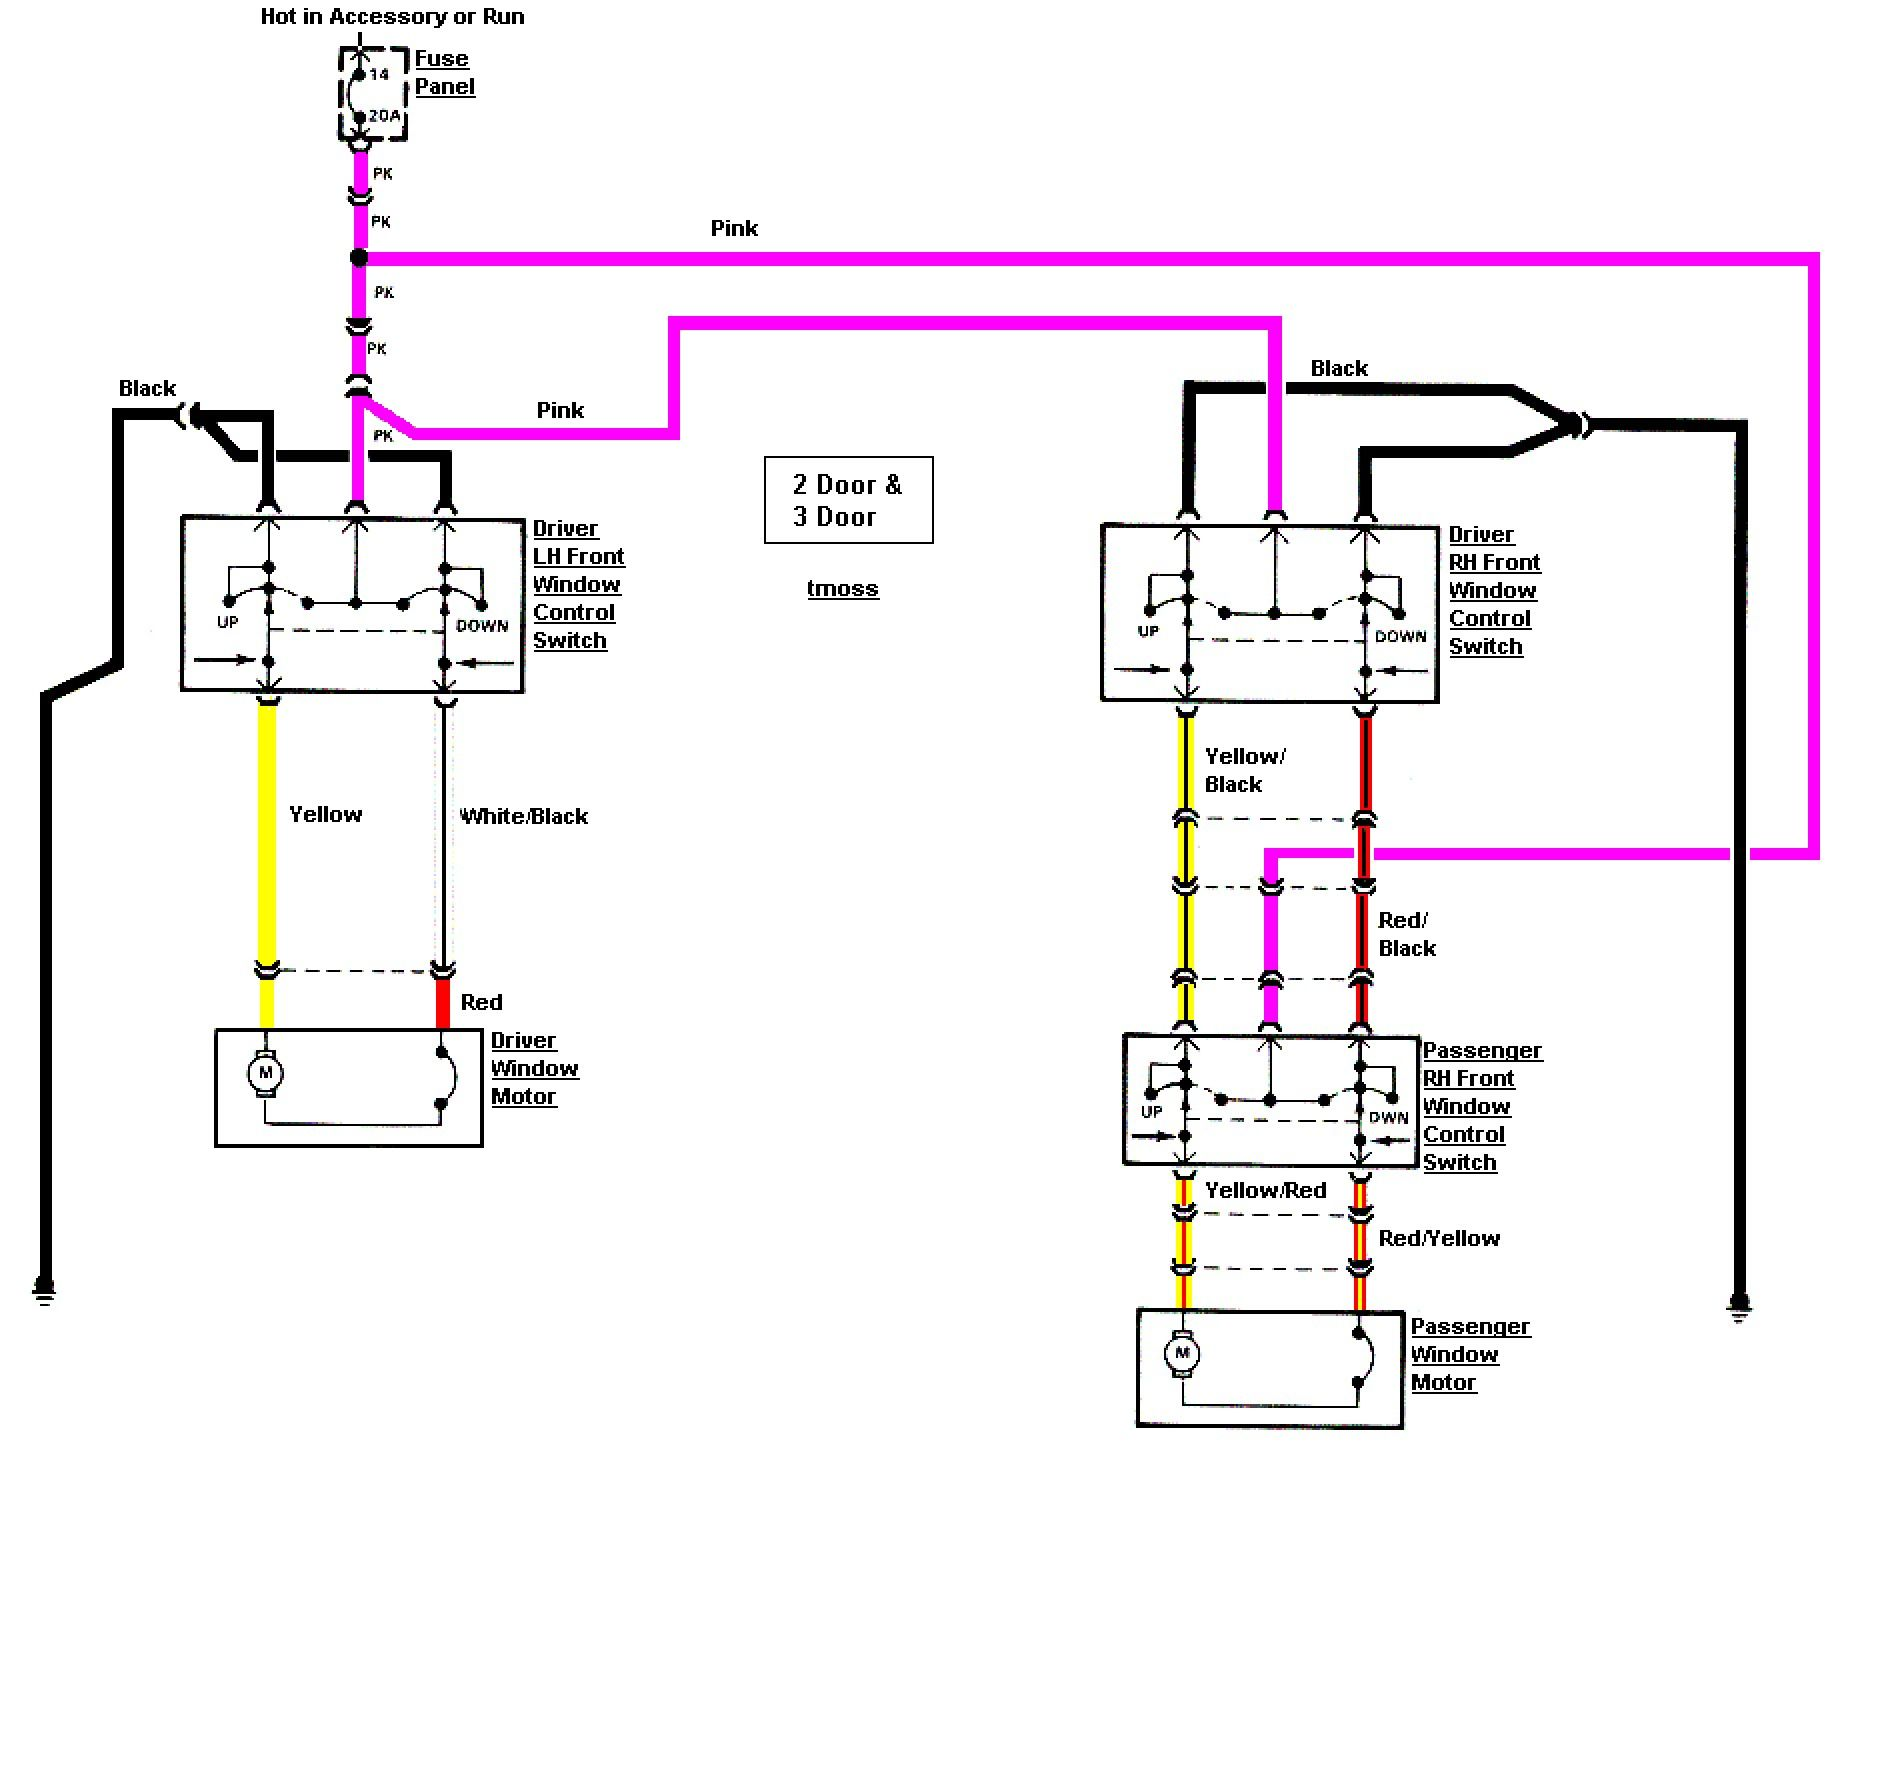 New Wiring Diagram Ac Mobil Diagram, Black yellow and